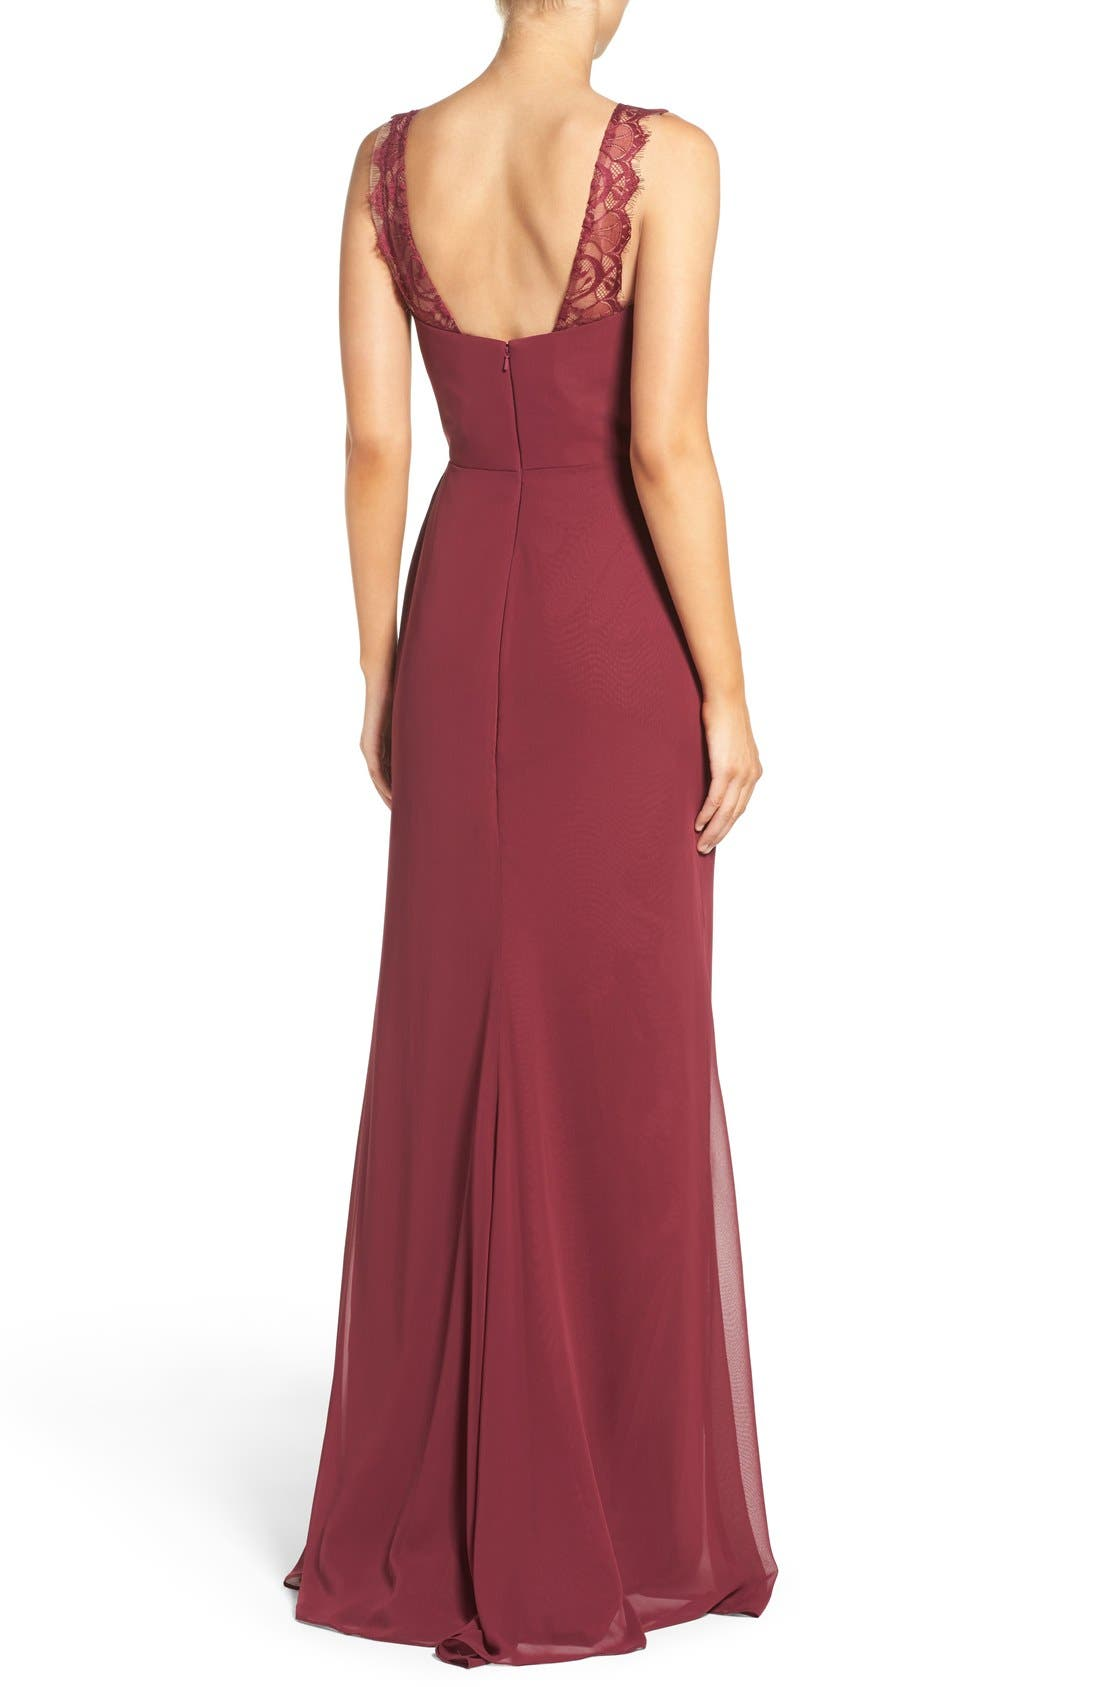 Lace Strap Gathered Chiffon Gown,                             Alternate thumbnail 2, color,                             Burgundy/ Burgundy